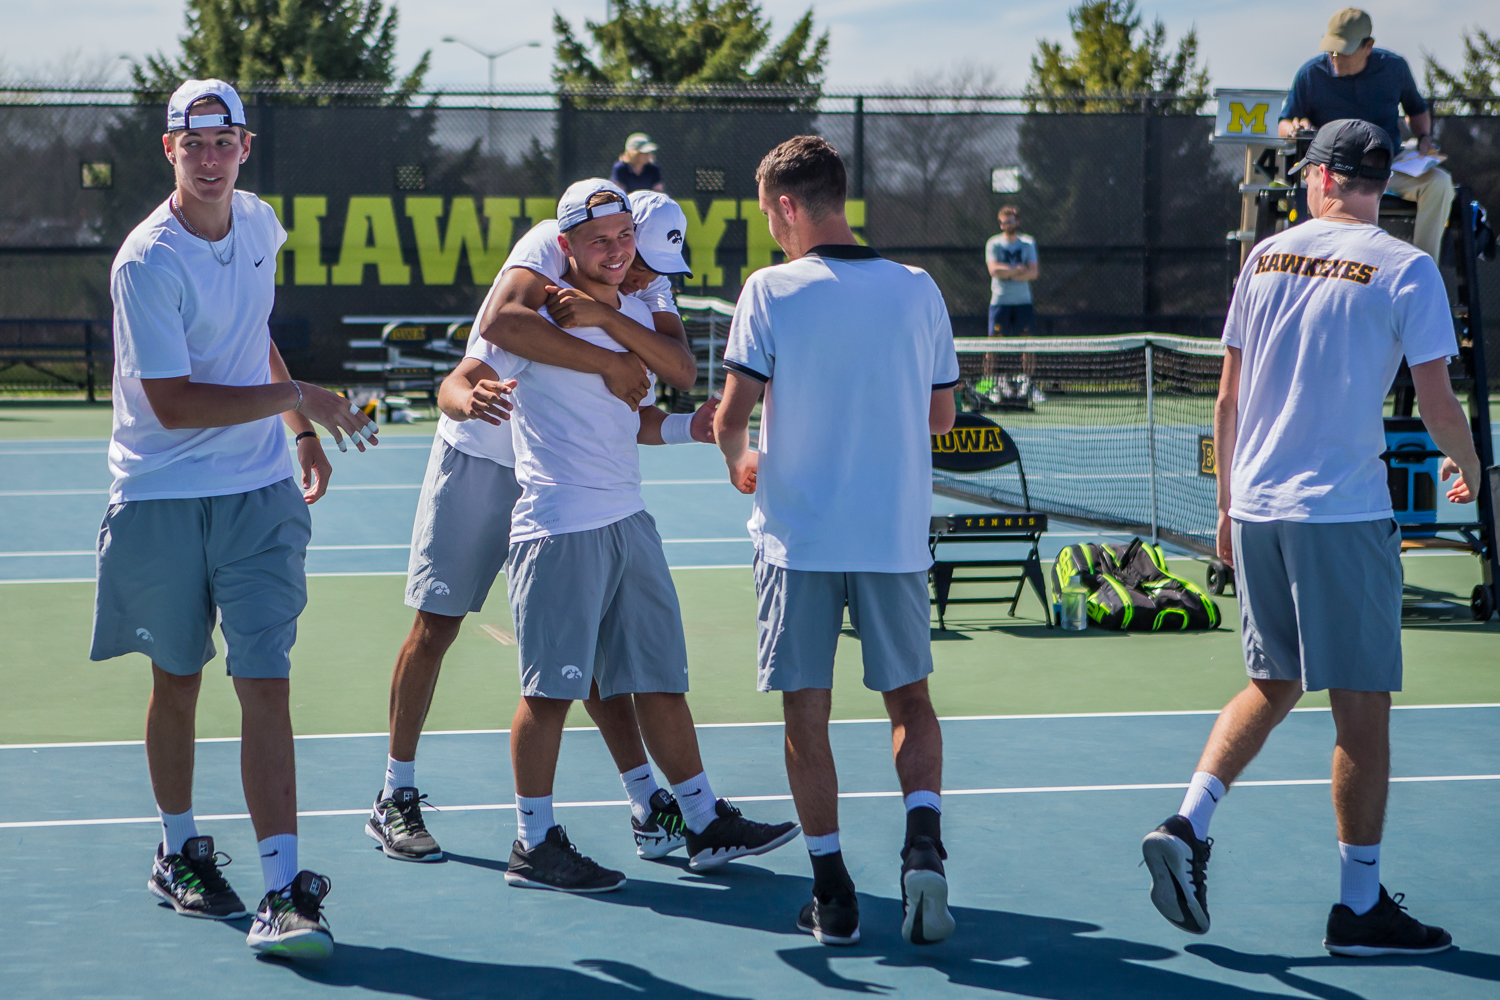 Iowa players huddle around Will Davies after his win during a men's tennis match between Iowa and Michigan at the HTRC on Sunday, April 21, 2019. The Hawkeyes, celebrating senior day, defeated the Wolverines, 4-1.